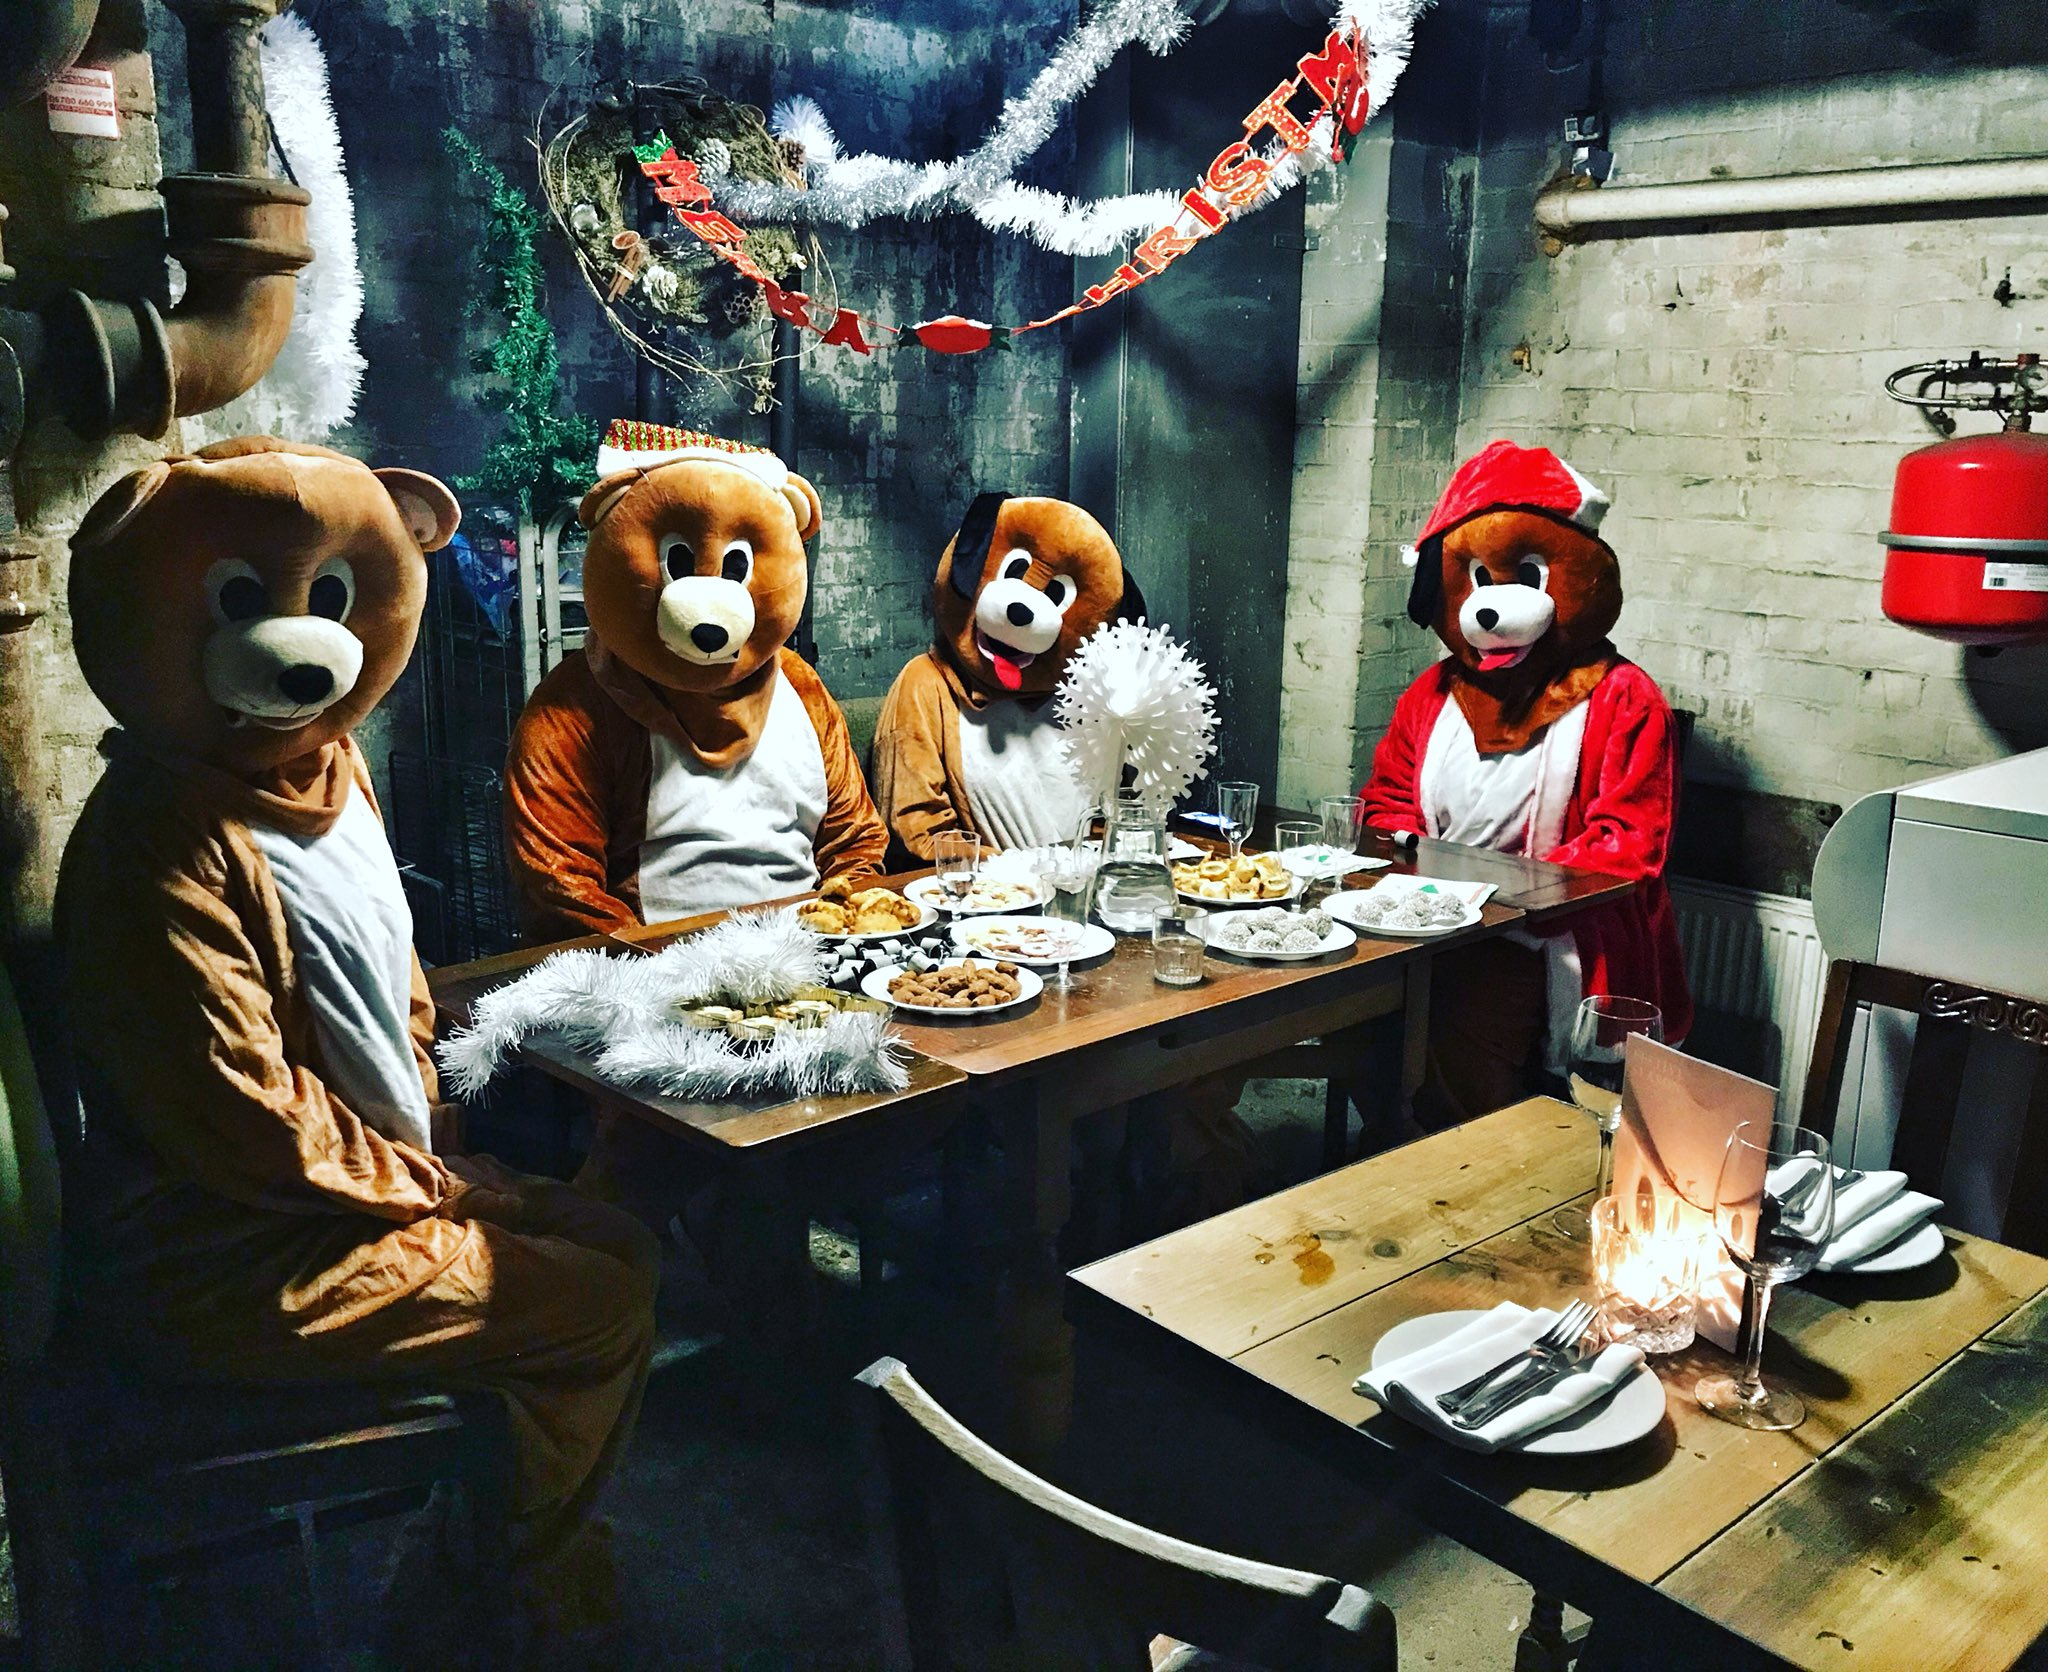 The #ShadyCabal Xmas party was a triumph. https://t.co/1RBwh9mgdv